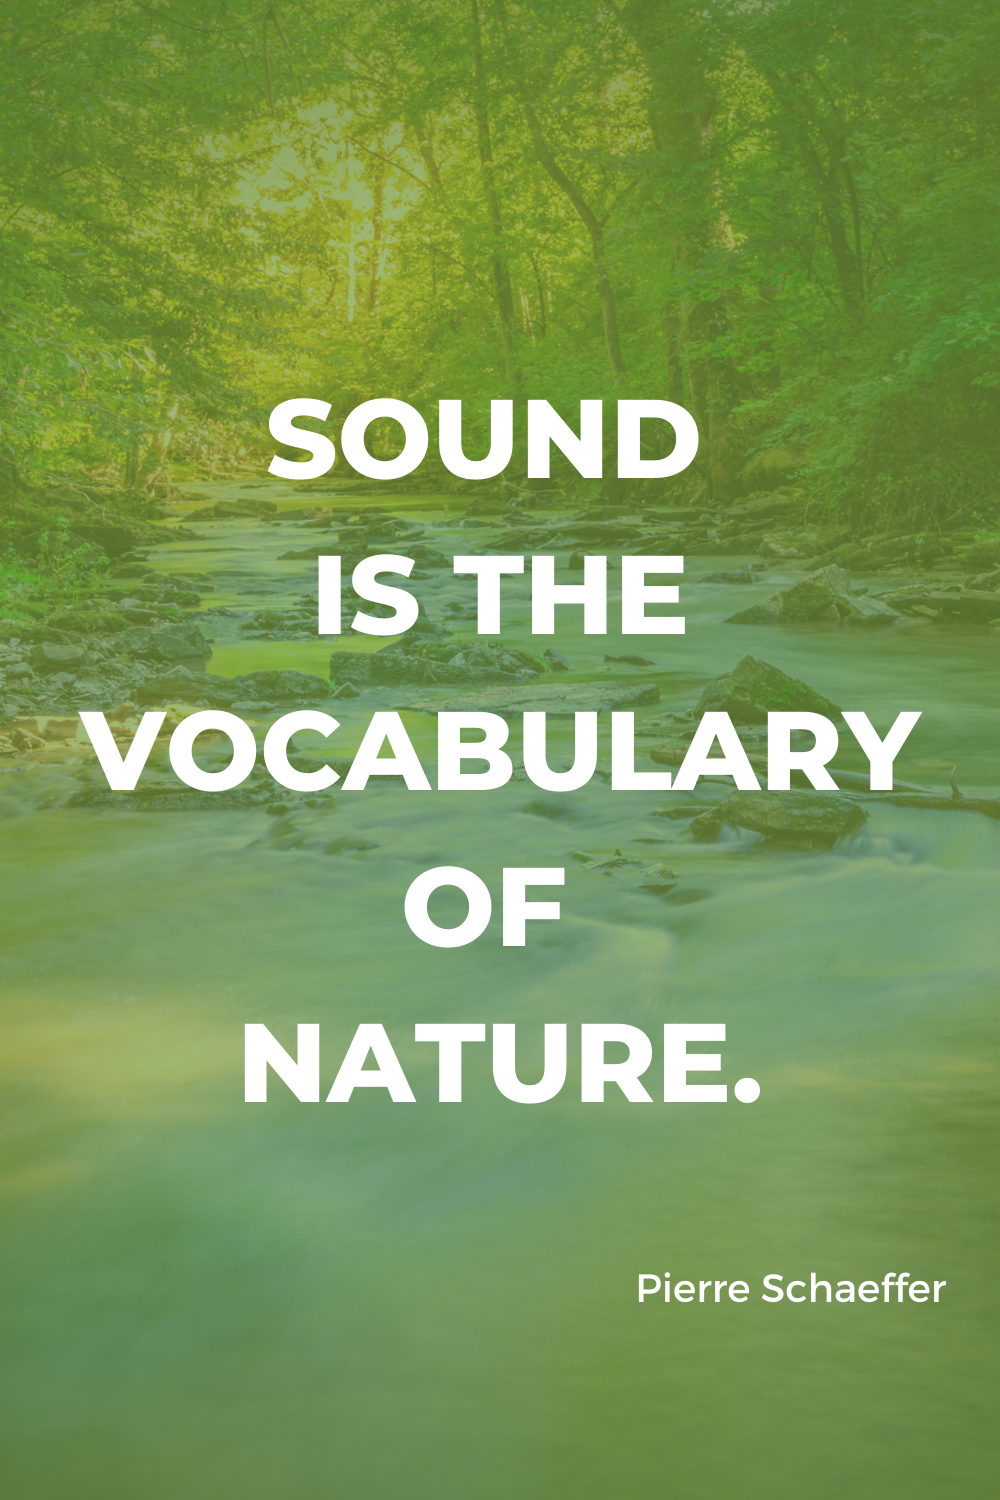 Have you heard the rustling of leaves today? Have you listened to the songs of the birds? Or heard the whistle of the wind? It's a great way to de-stress. For more stress-free living ideas, head to our website. #thisishuso #thursdayvibes #soundhealing